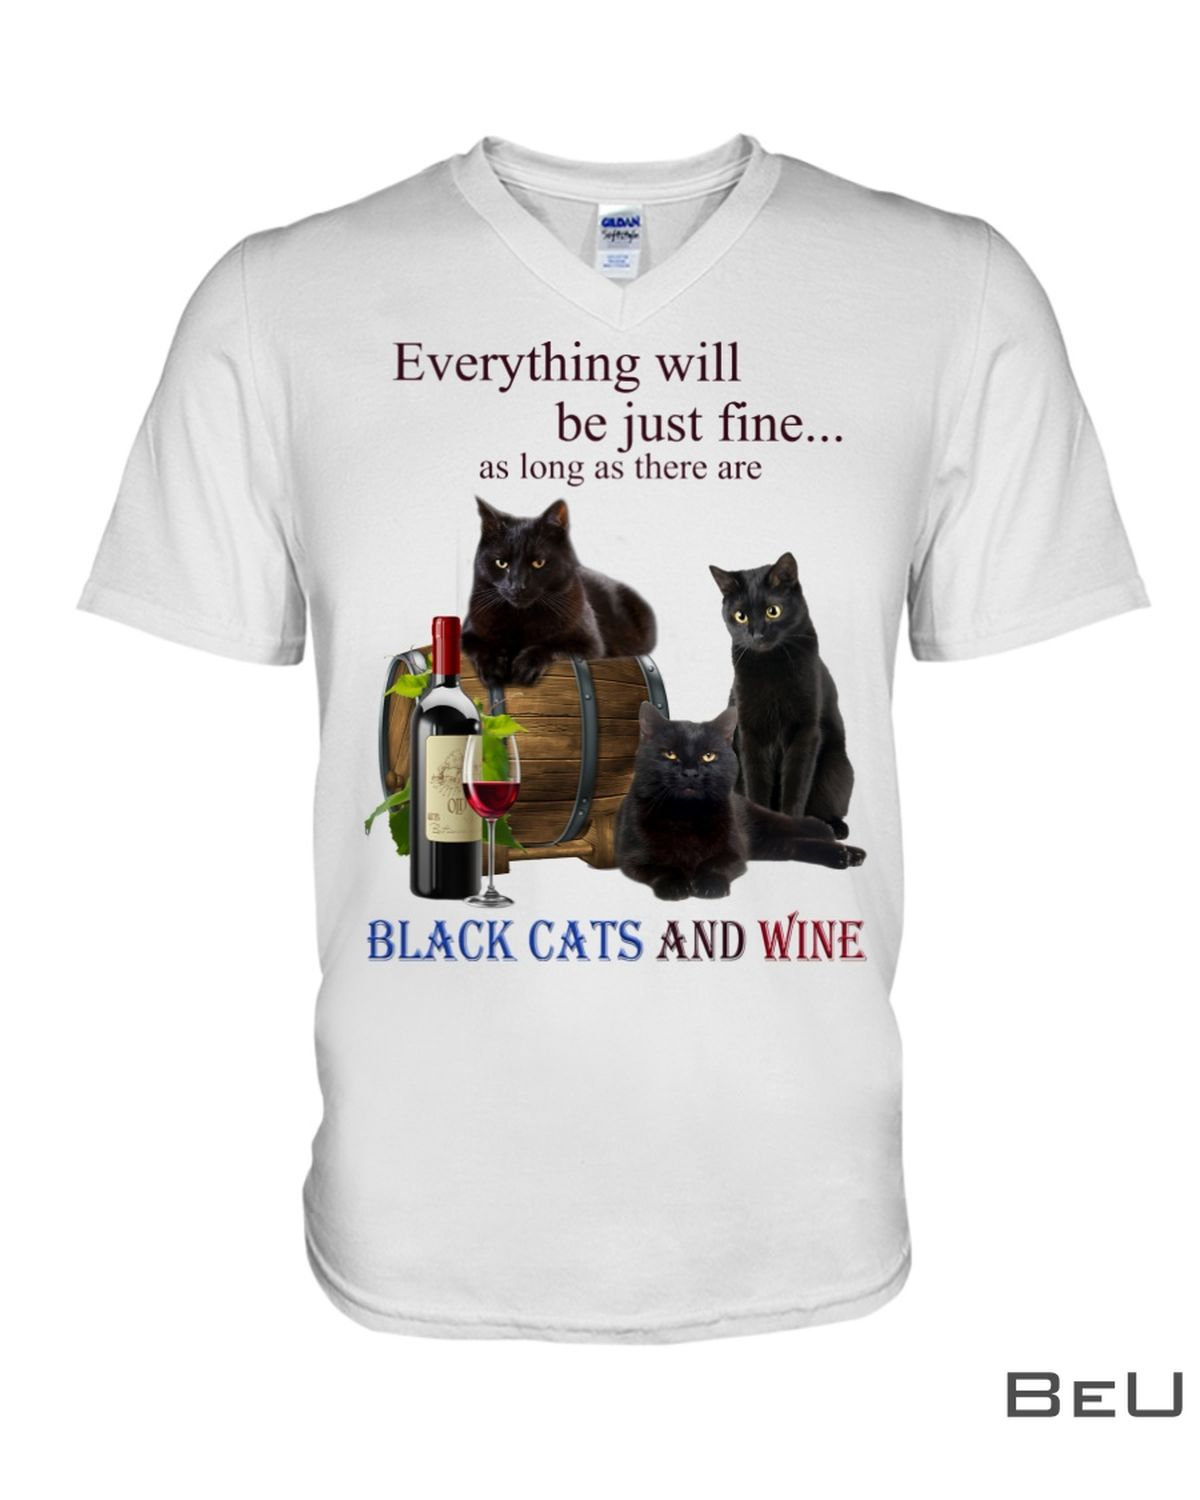 Everything Will Be Just Fine As Long As There Are Black Cats And Wine Shirtx